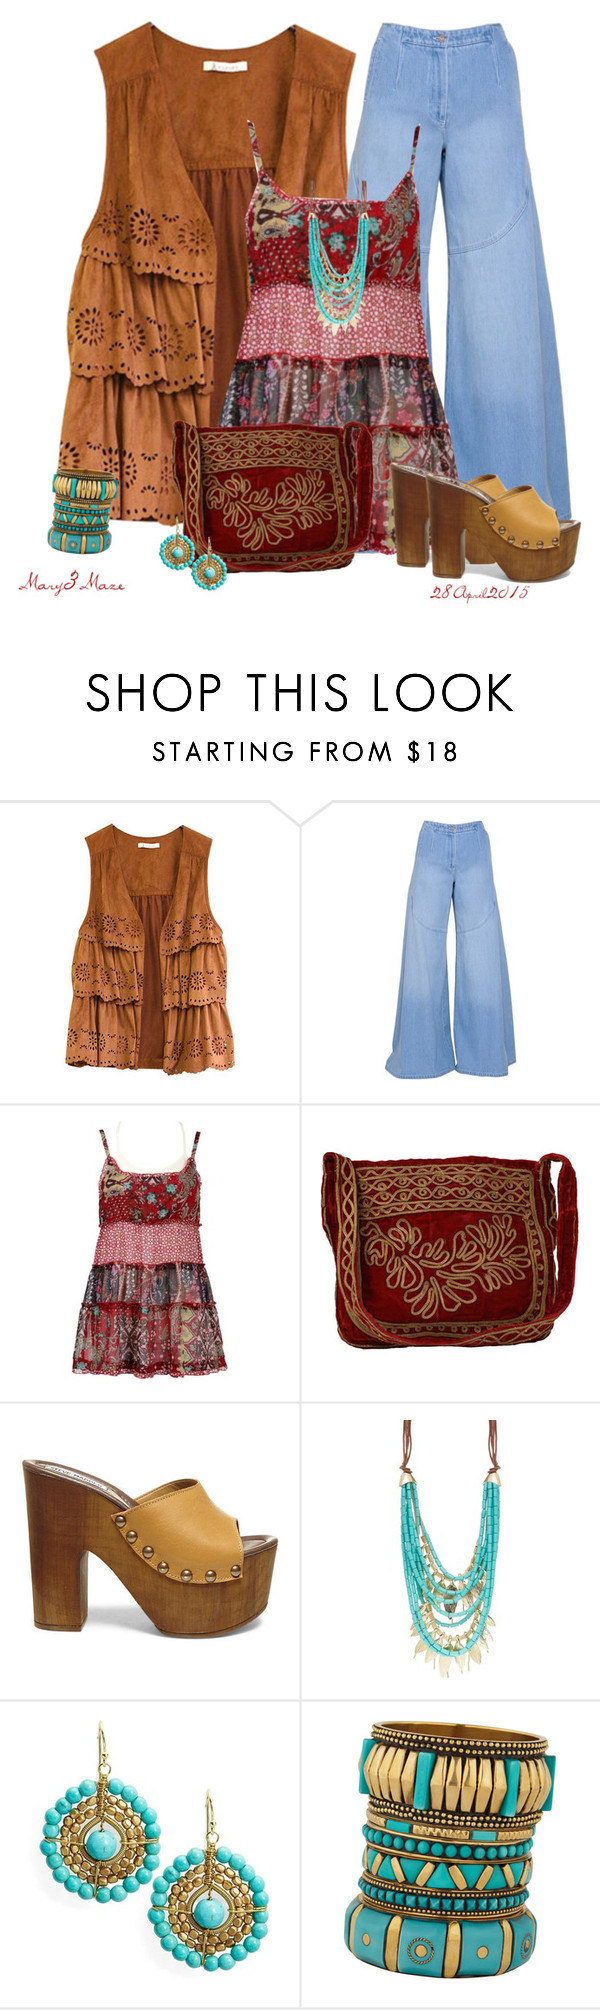 """""""Untitled #365"""" by octobermaze ❤ liked on Polyvore featuring Kenzo, HOBO, Steve Madden, KH Studio, Panacea and ALDO"""